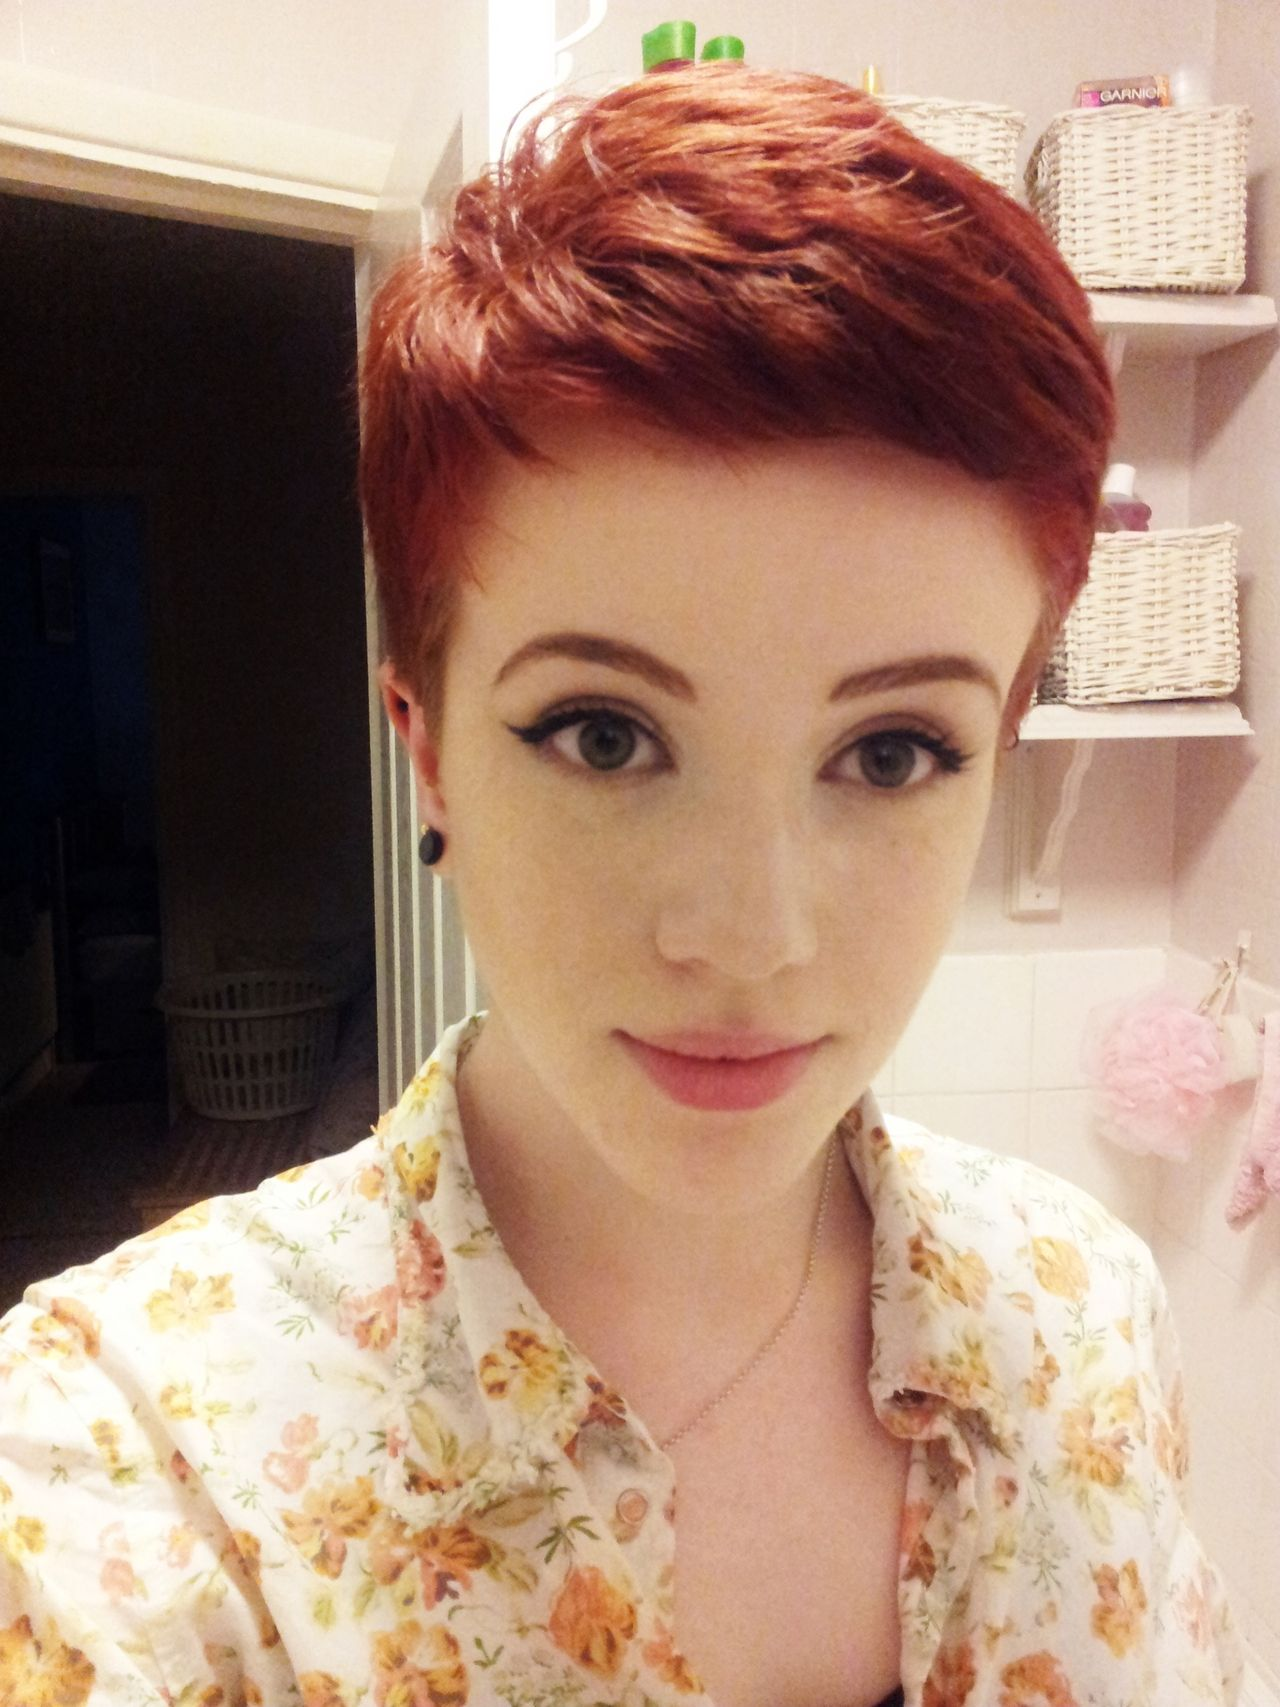 I love this cute pixie cut she has such a pretty red hair color too